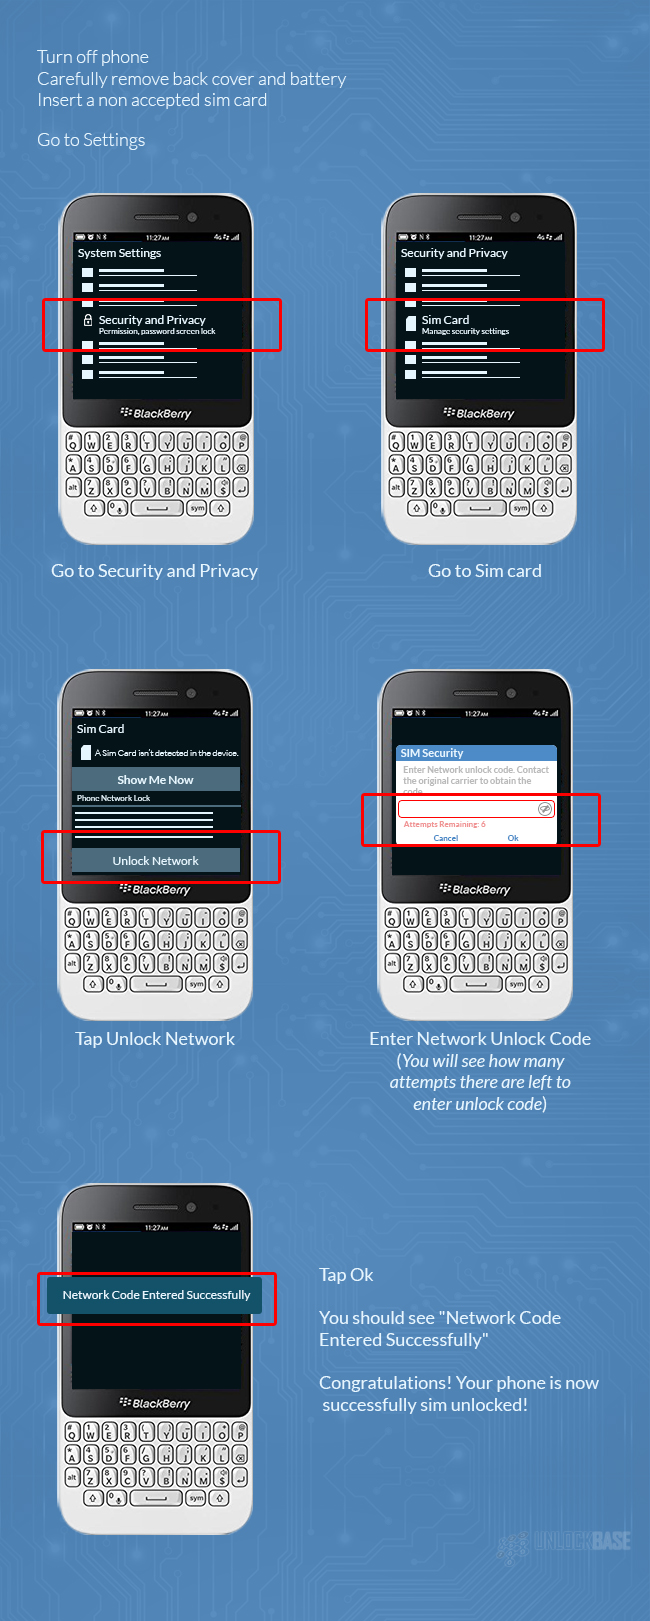 How to Enter a Permanent SIM Unlock Code for Blackberry Phone